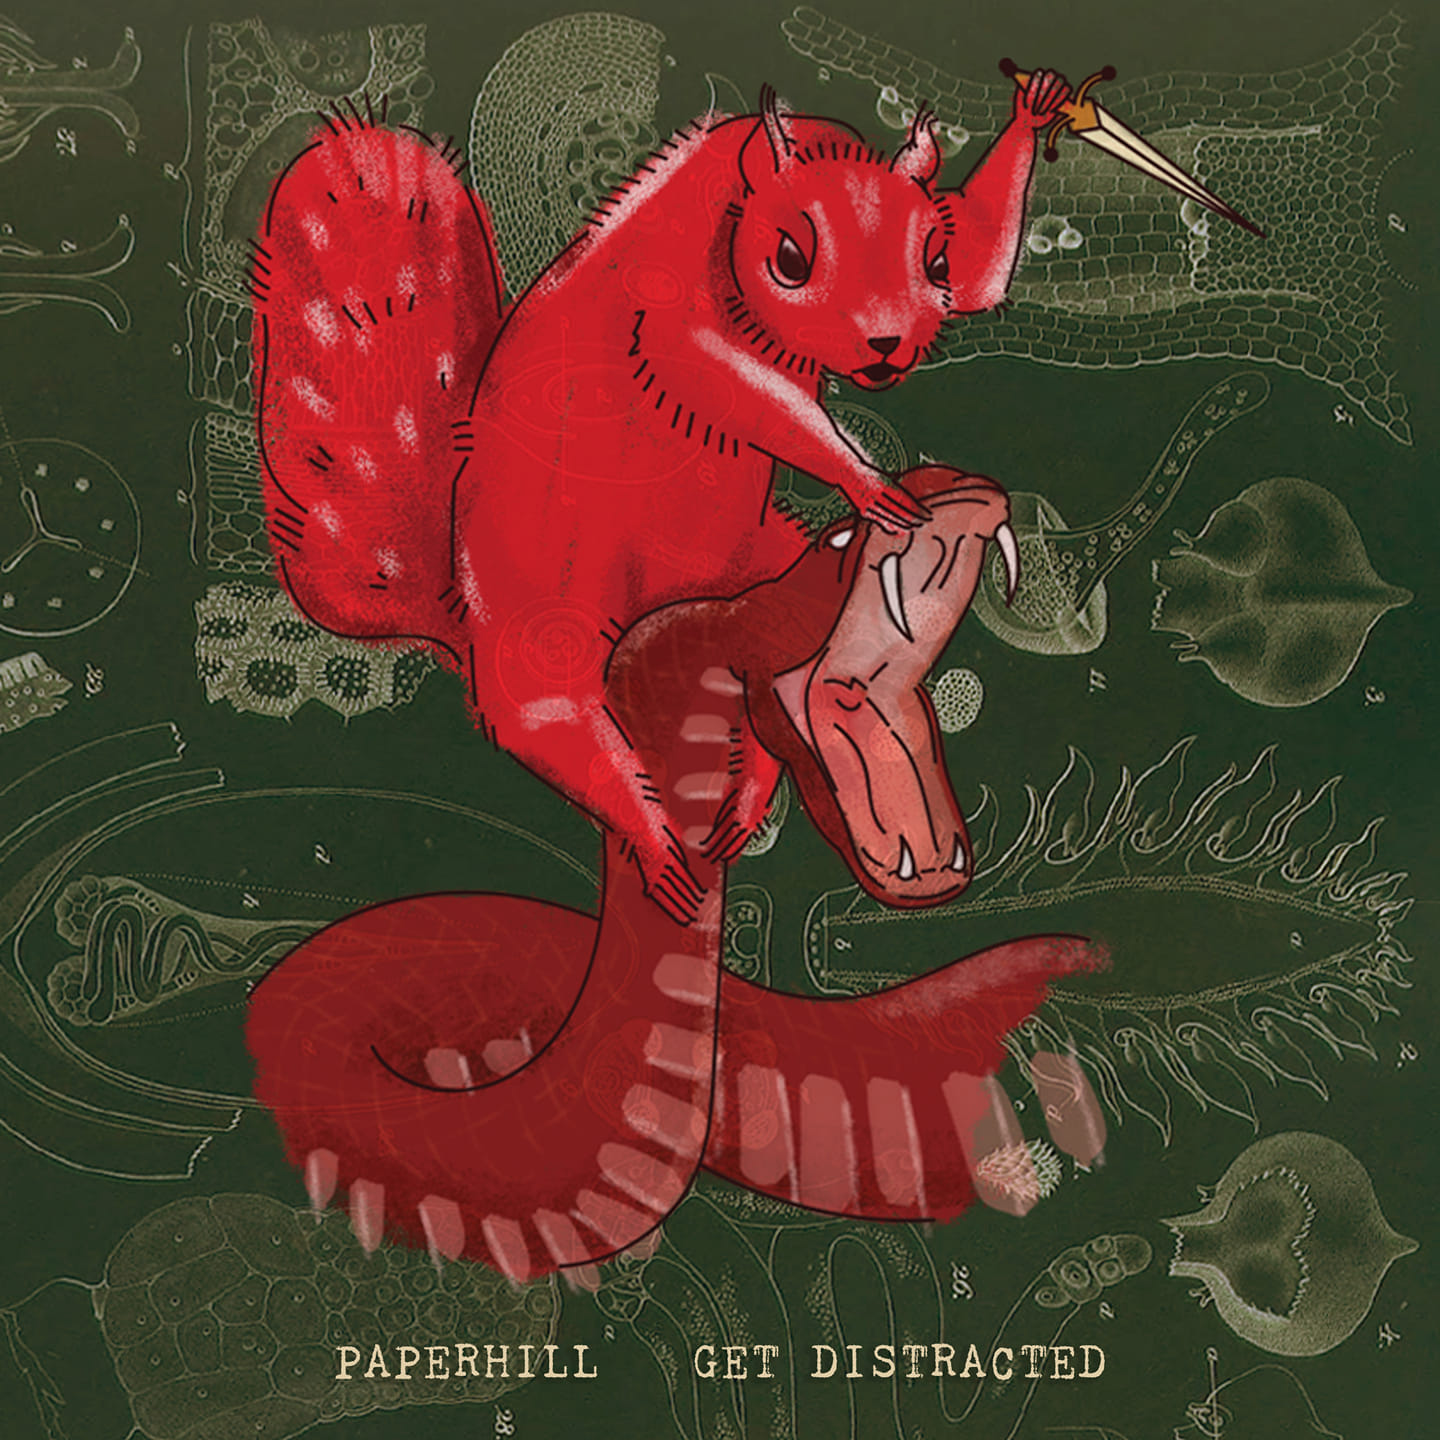 Get Distracted With Paperhill! - blog post image